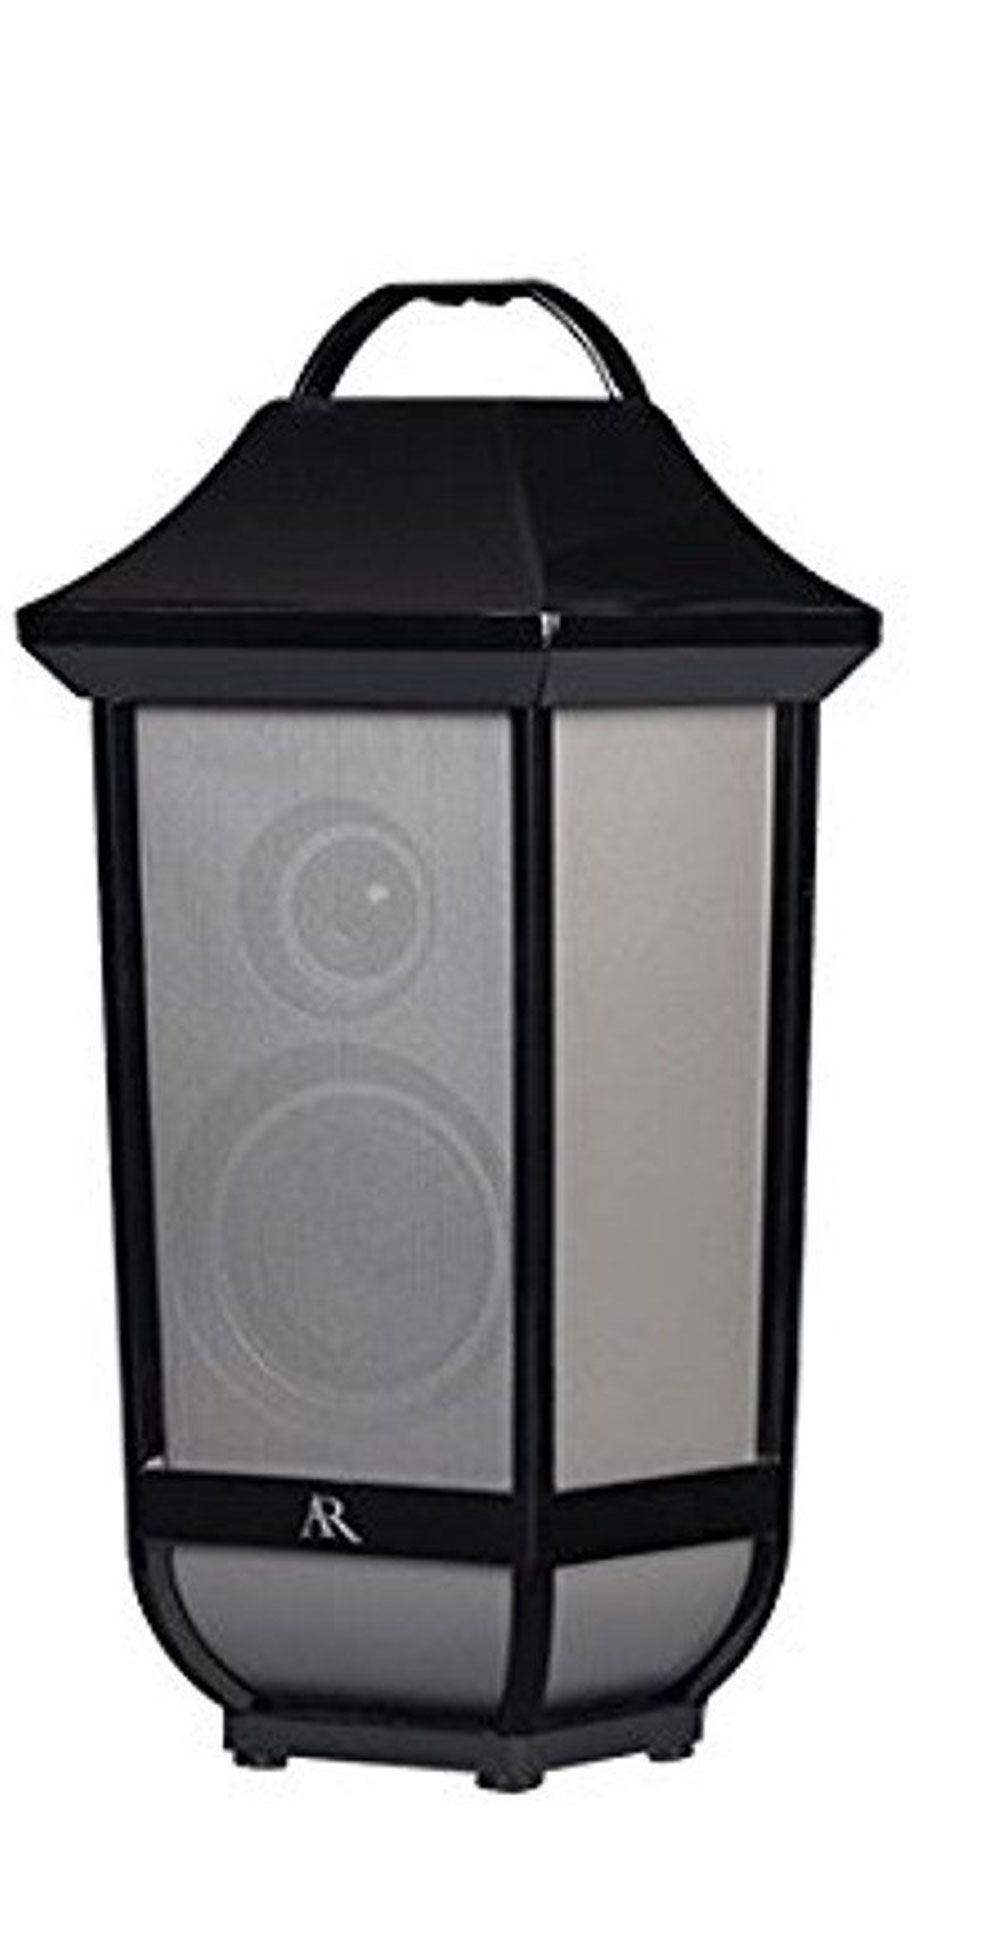 Outdoor Home Speakers and Subwoofers | eBay